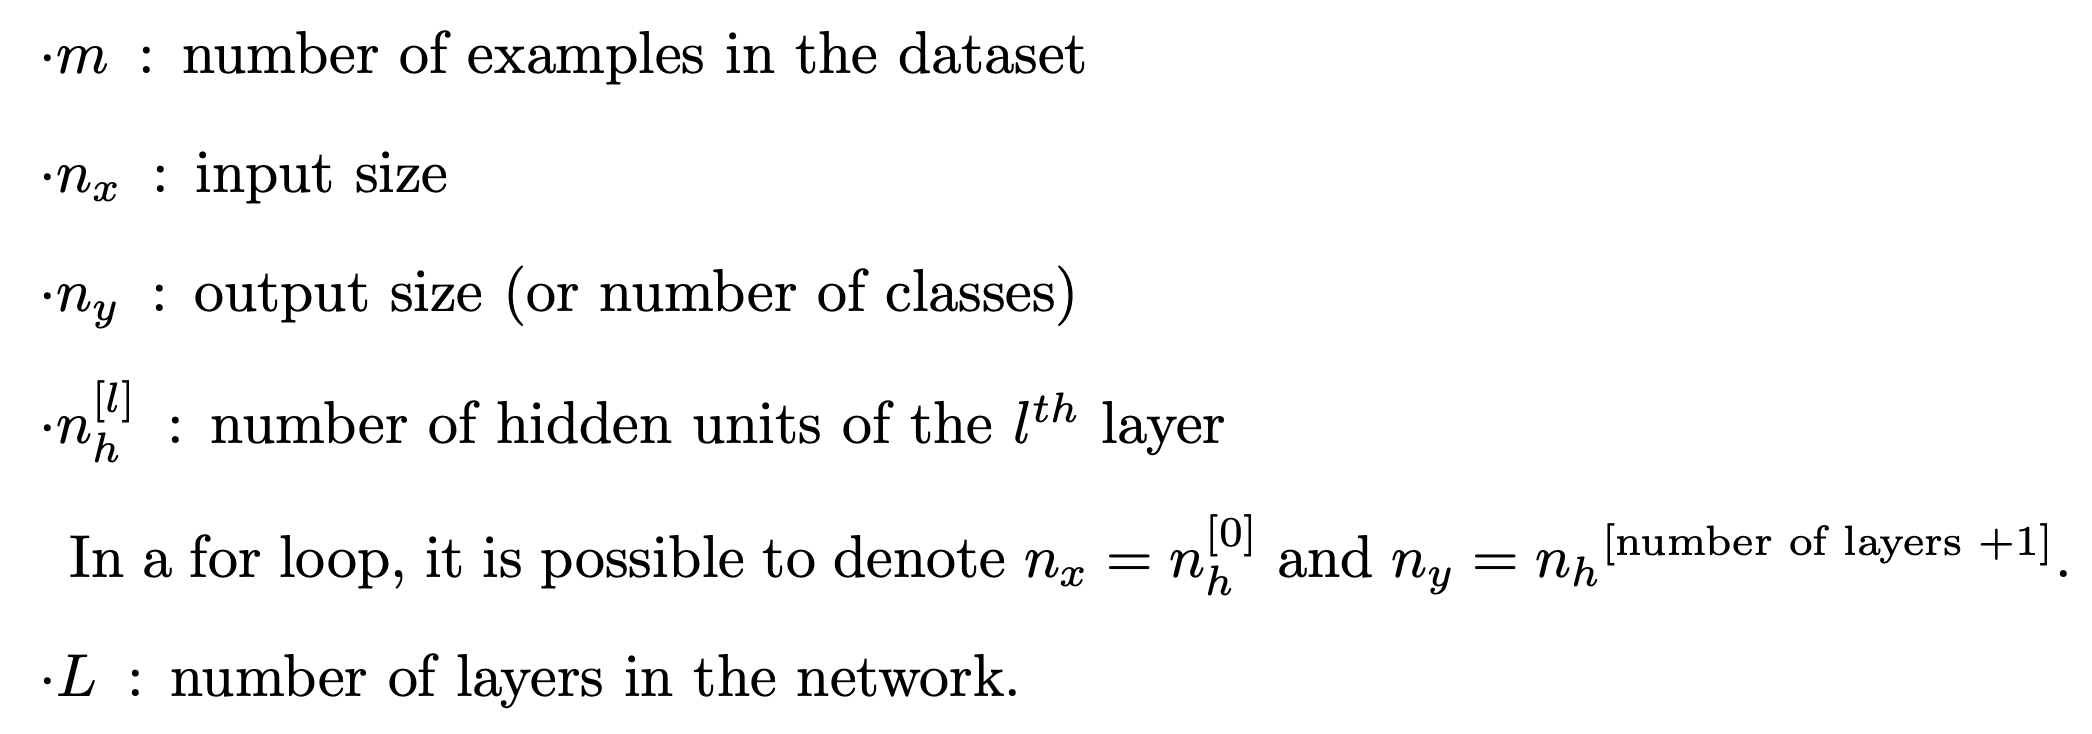 logistic-regression-neural-network